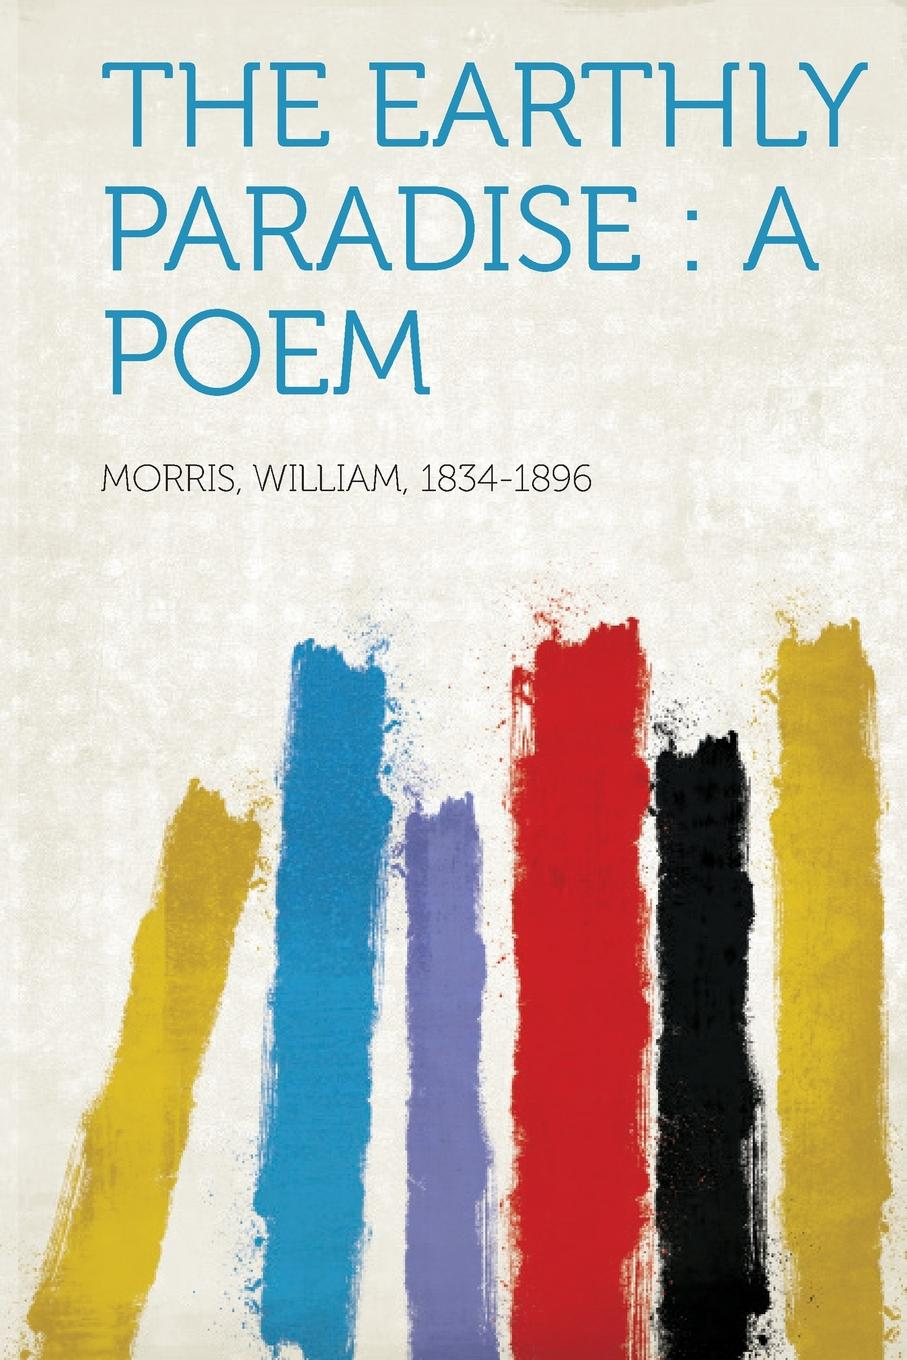 The Earthly Paradise. A Poem